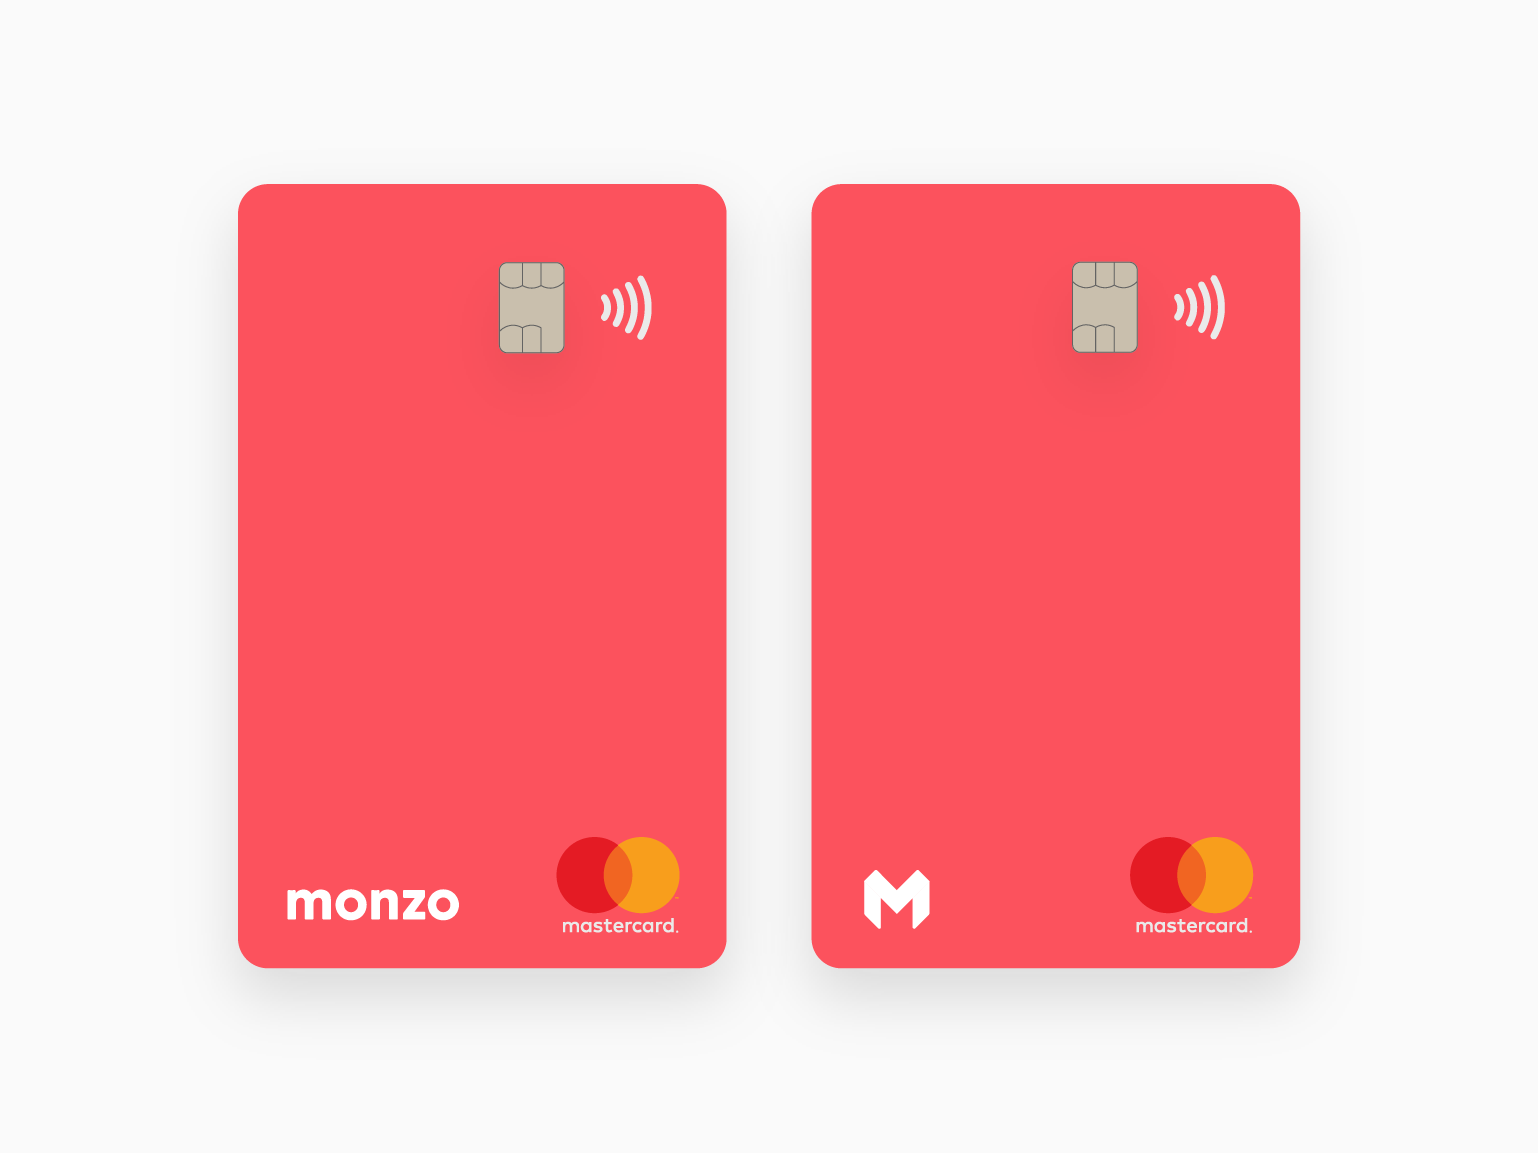 Monzo Vertical Debit Card vertical card monzo hot coral challenger bank debit card mobile bank bank card bank app